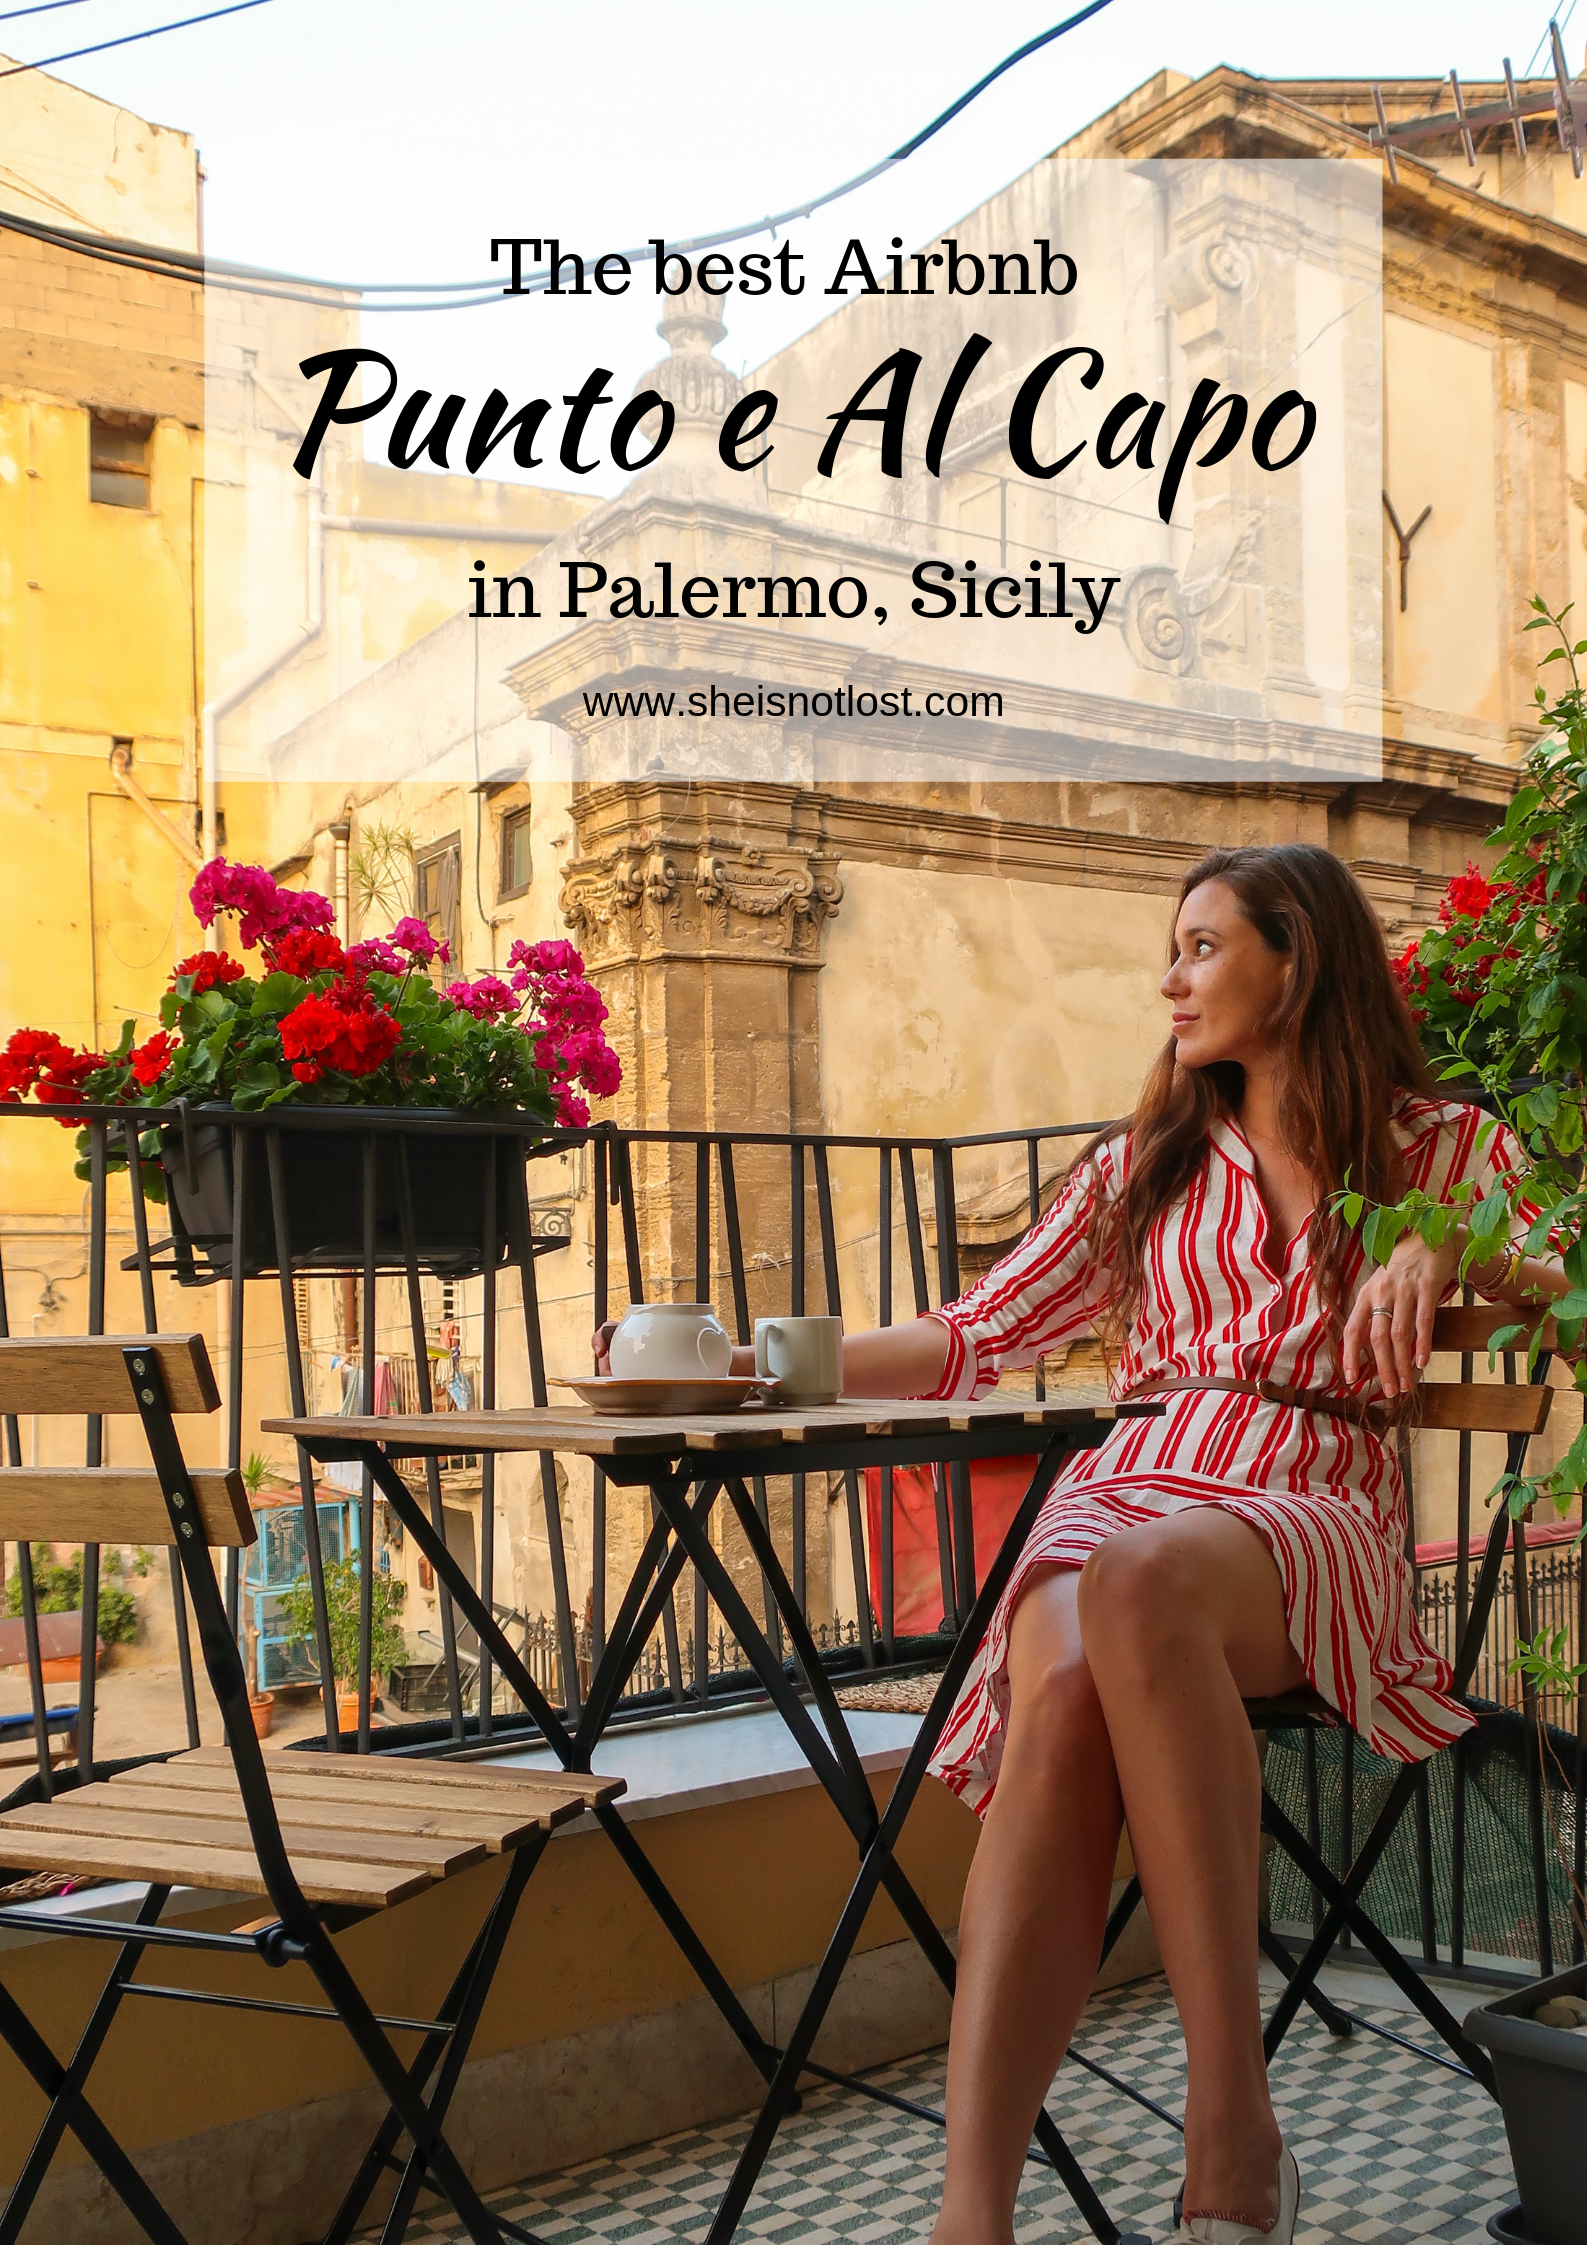 Palermo Airbnb